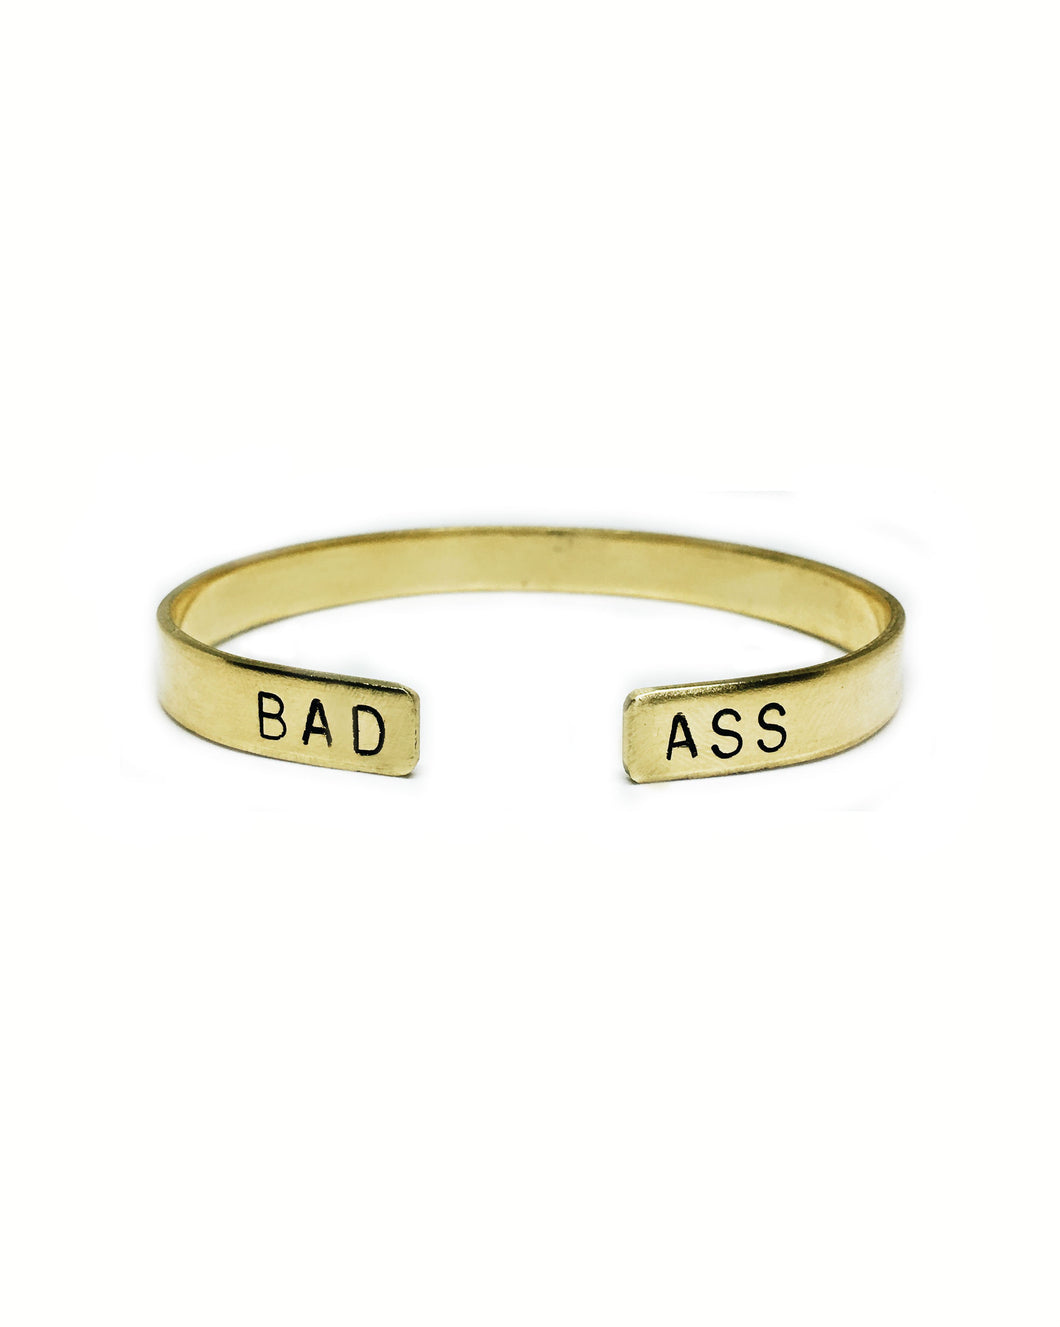 Badass Open Ended Handstamped Cuff